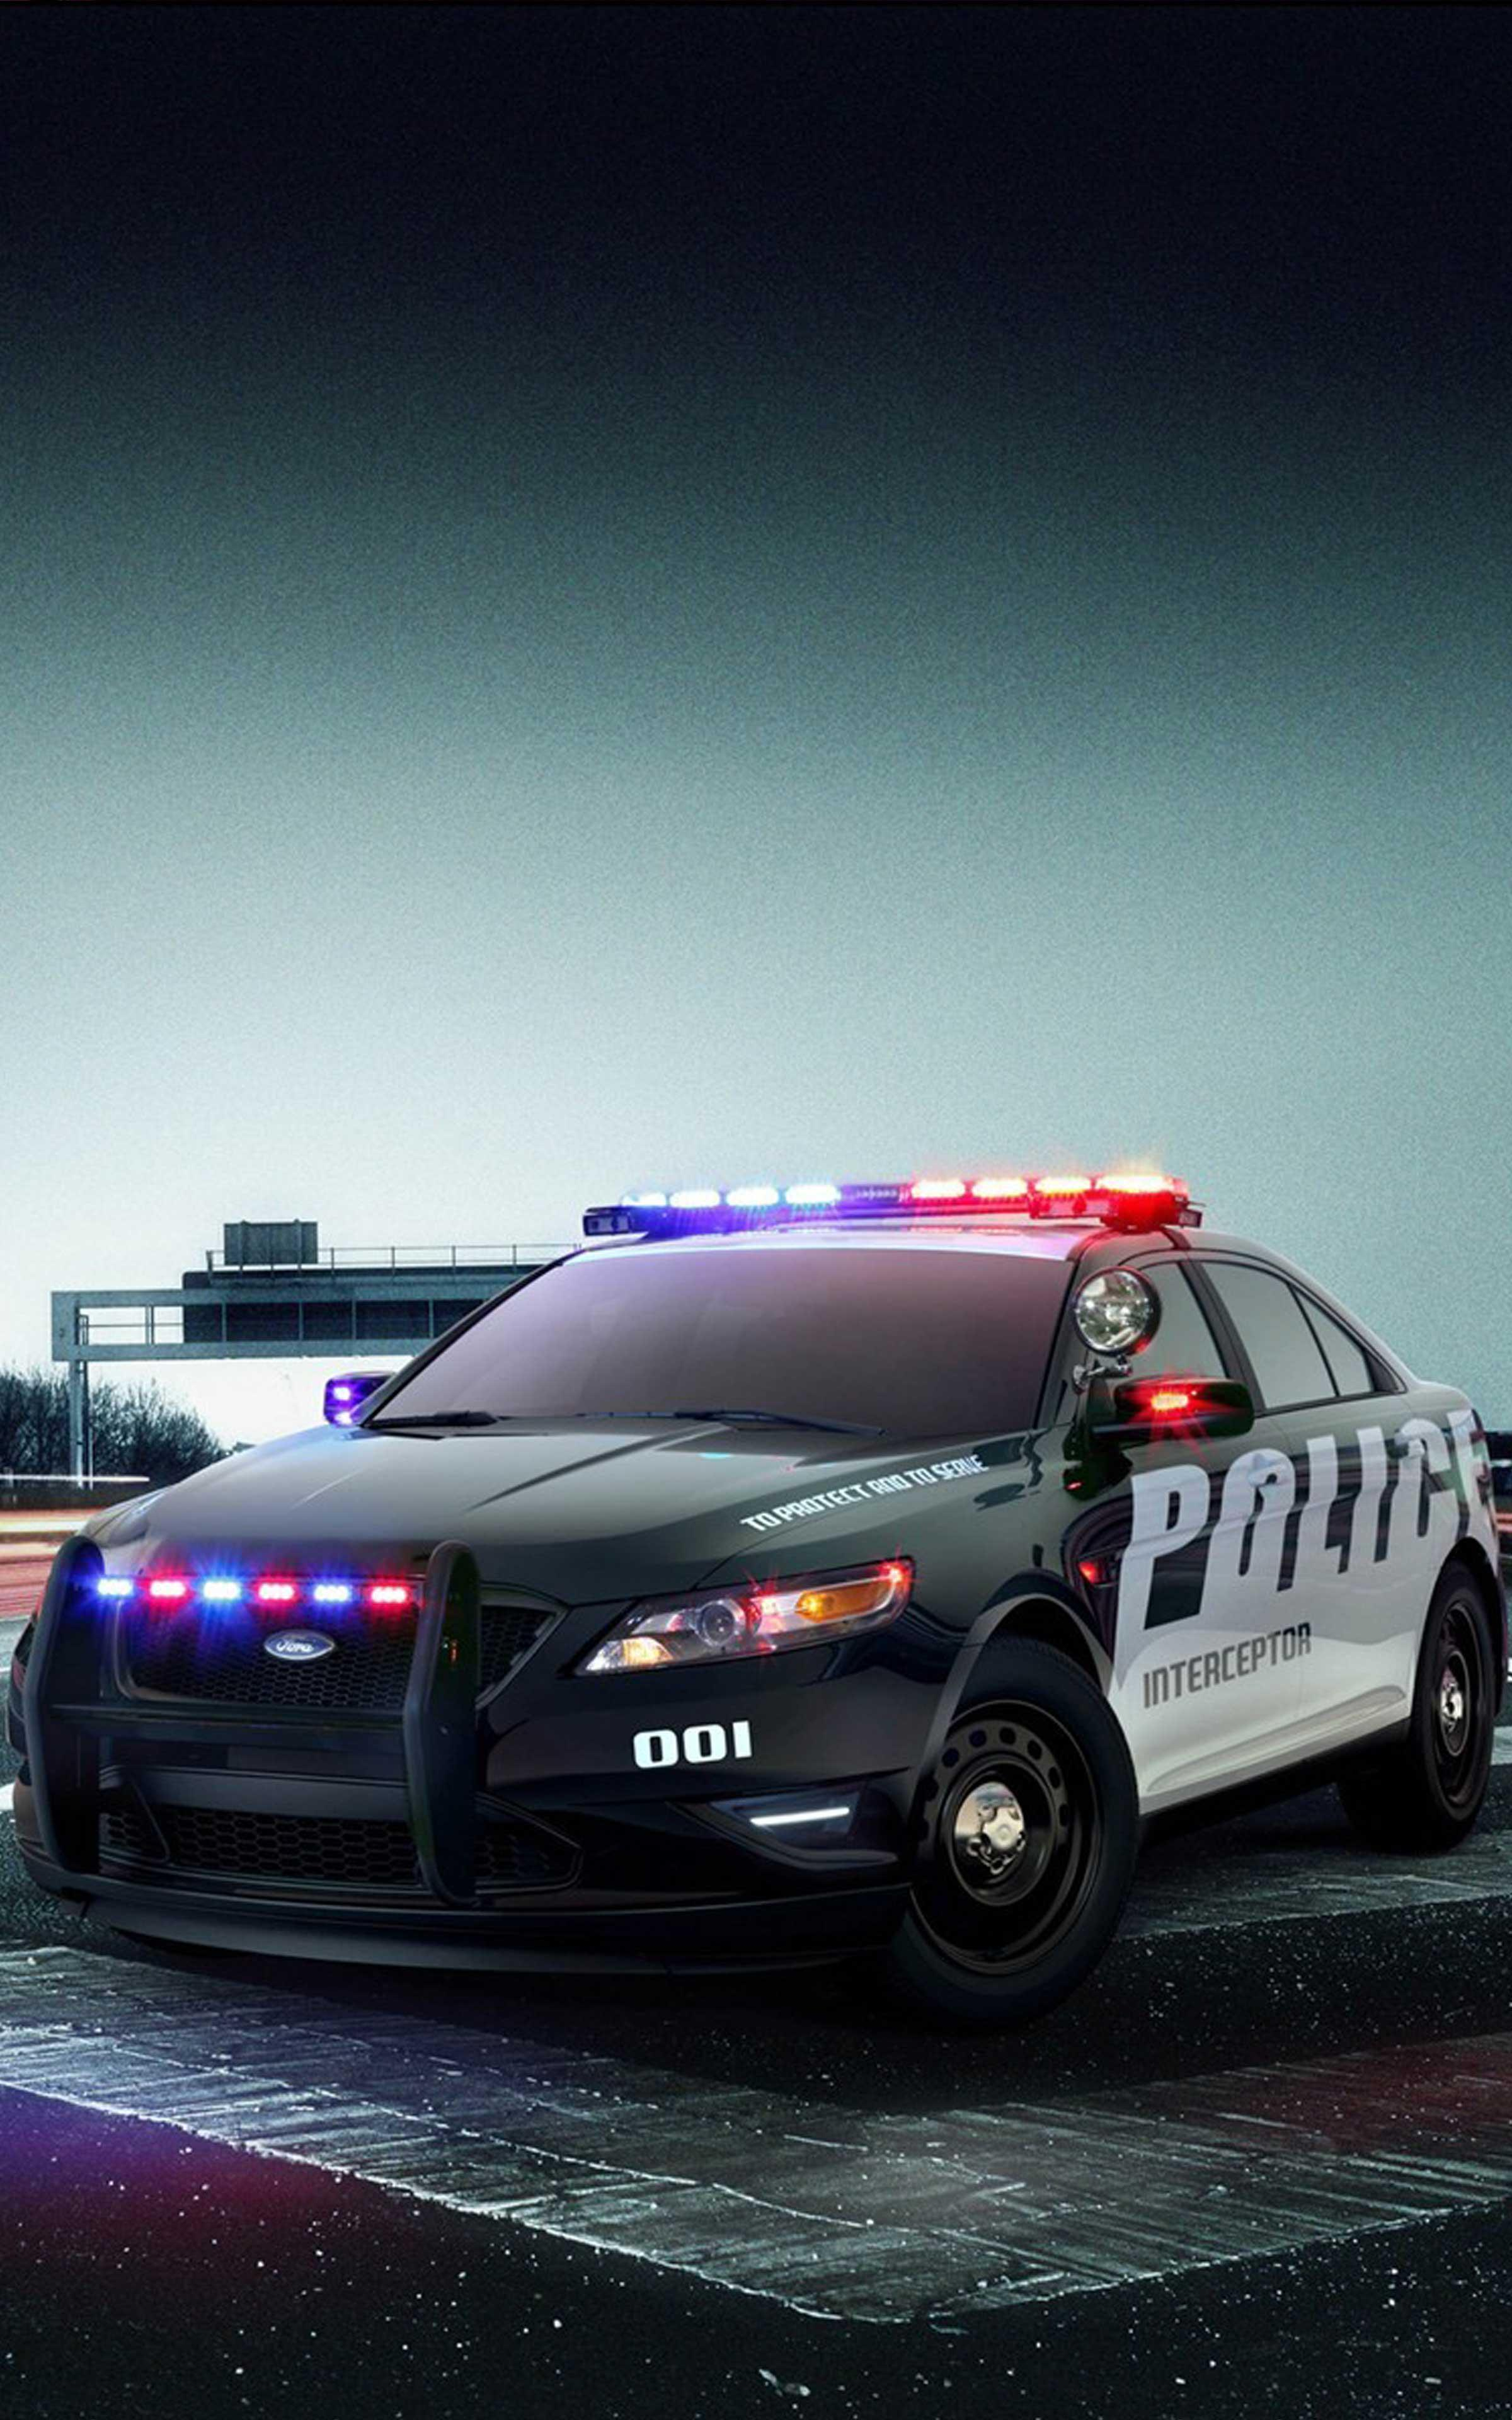 Police Car Wallpaper Best Police Car Wallpapers For